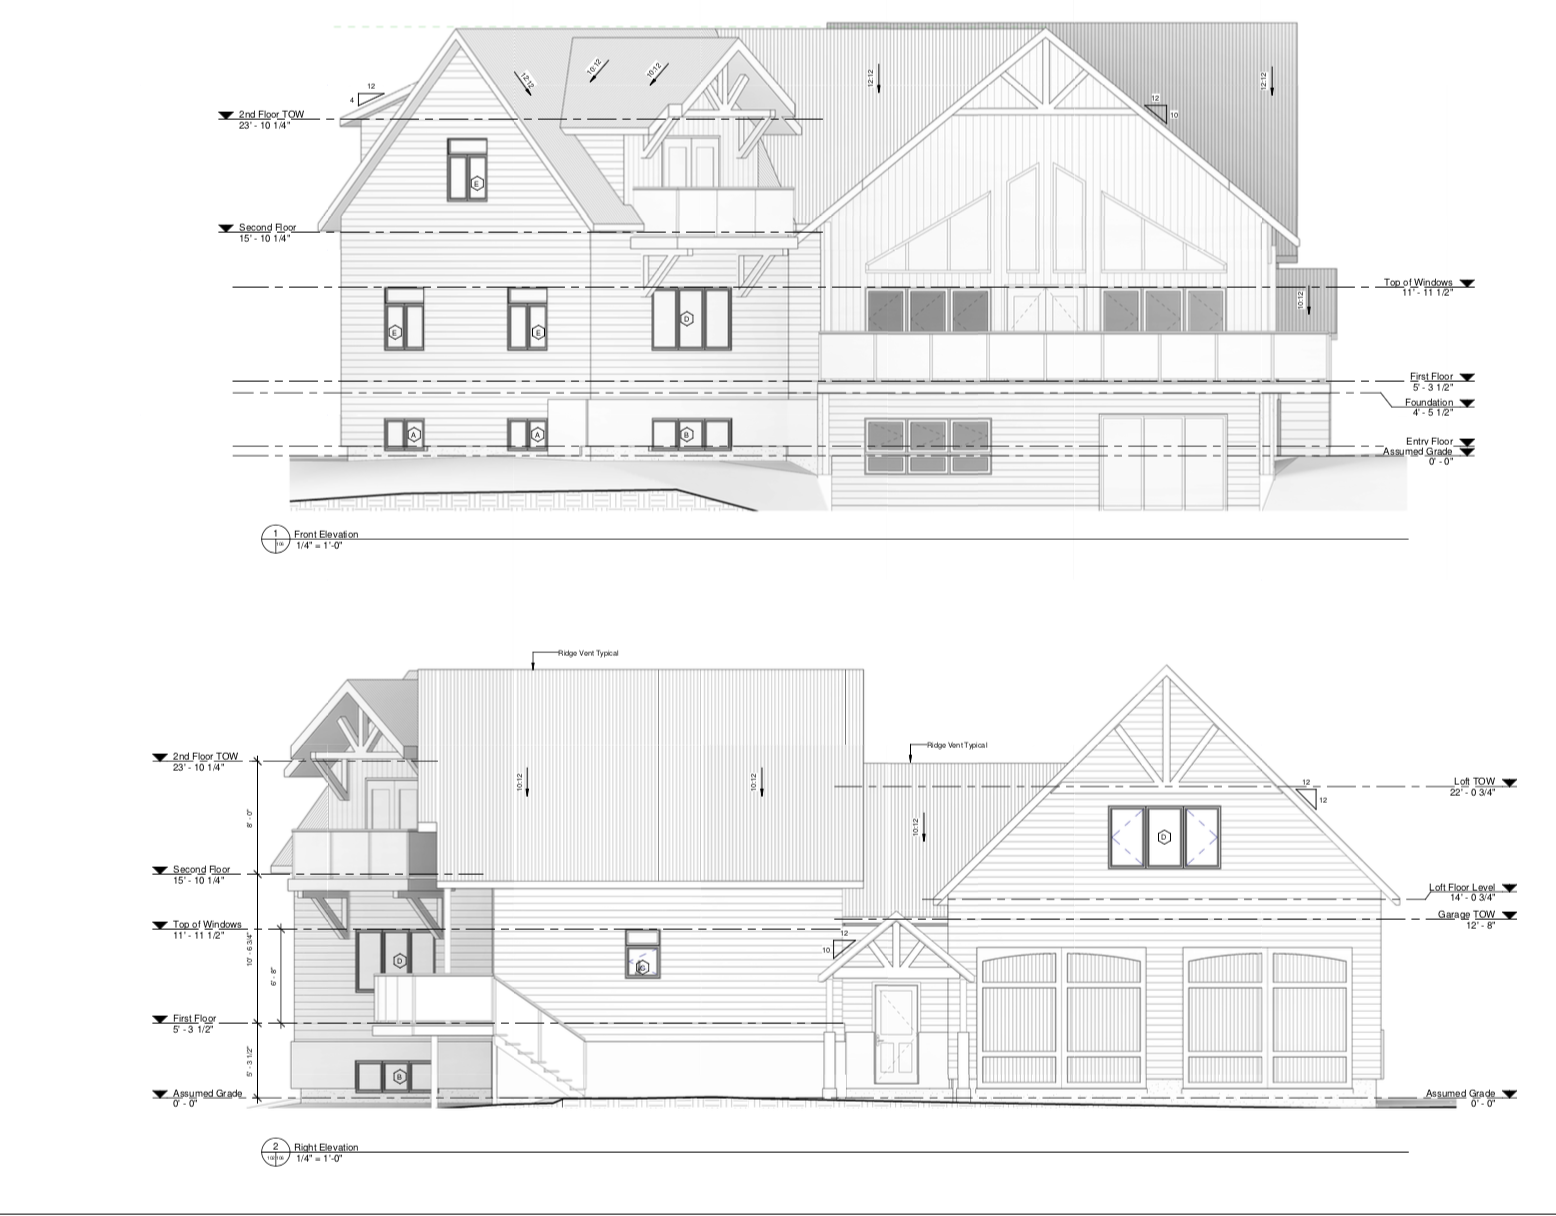 Residential House Plans - We design and draw floor plans and elevations for remodels, additions and new construction, including cabinetry, millwork, fireplace, stairway and lighting design.Our plans are ready for permit and construction.It starts with a 1-hour initial consultation, at $150, we then provide you with a proposal based off your needs and requirements.